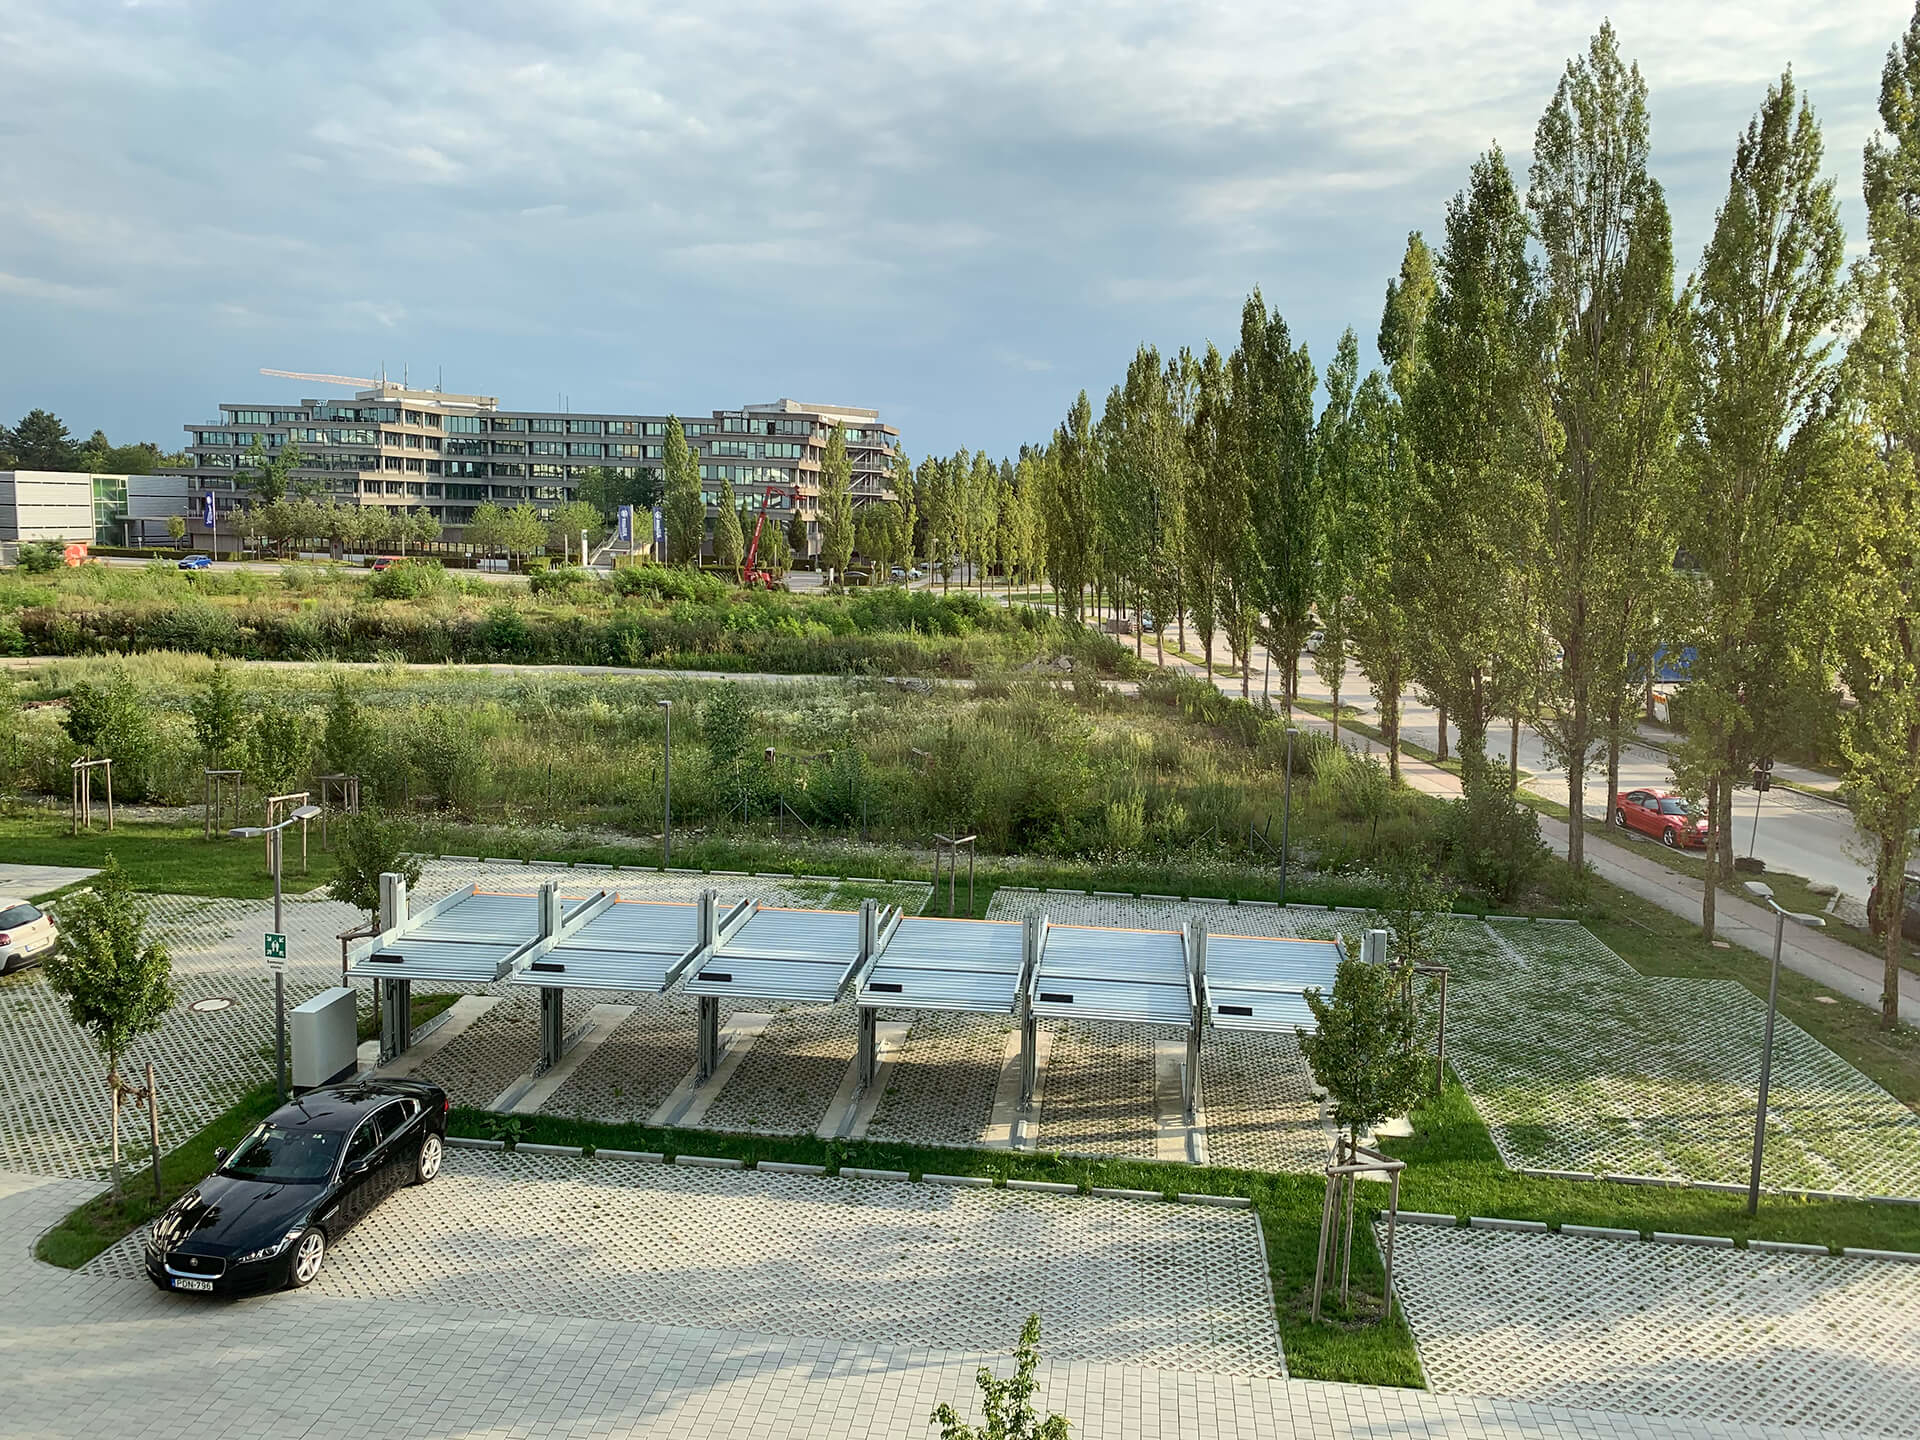 Project Parkeersysteem Single 2061 Outdoor Munchen 1 Aarding Parking Systems